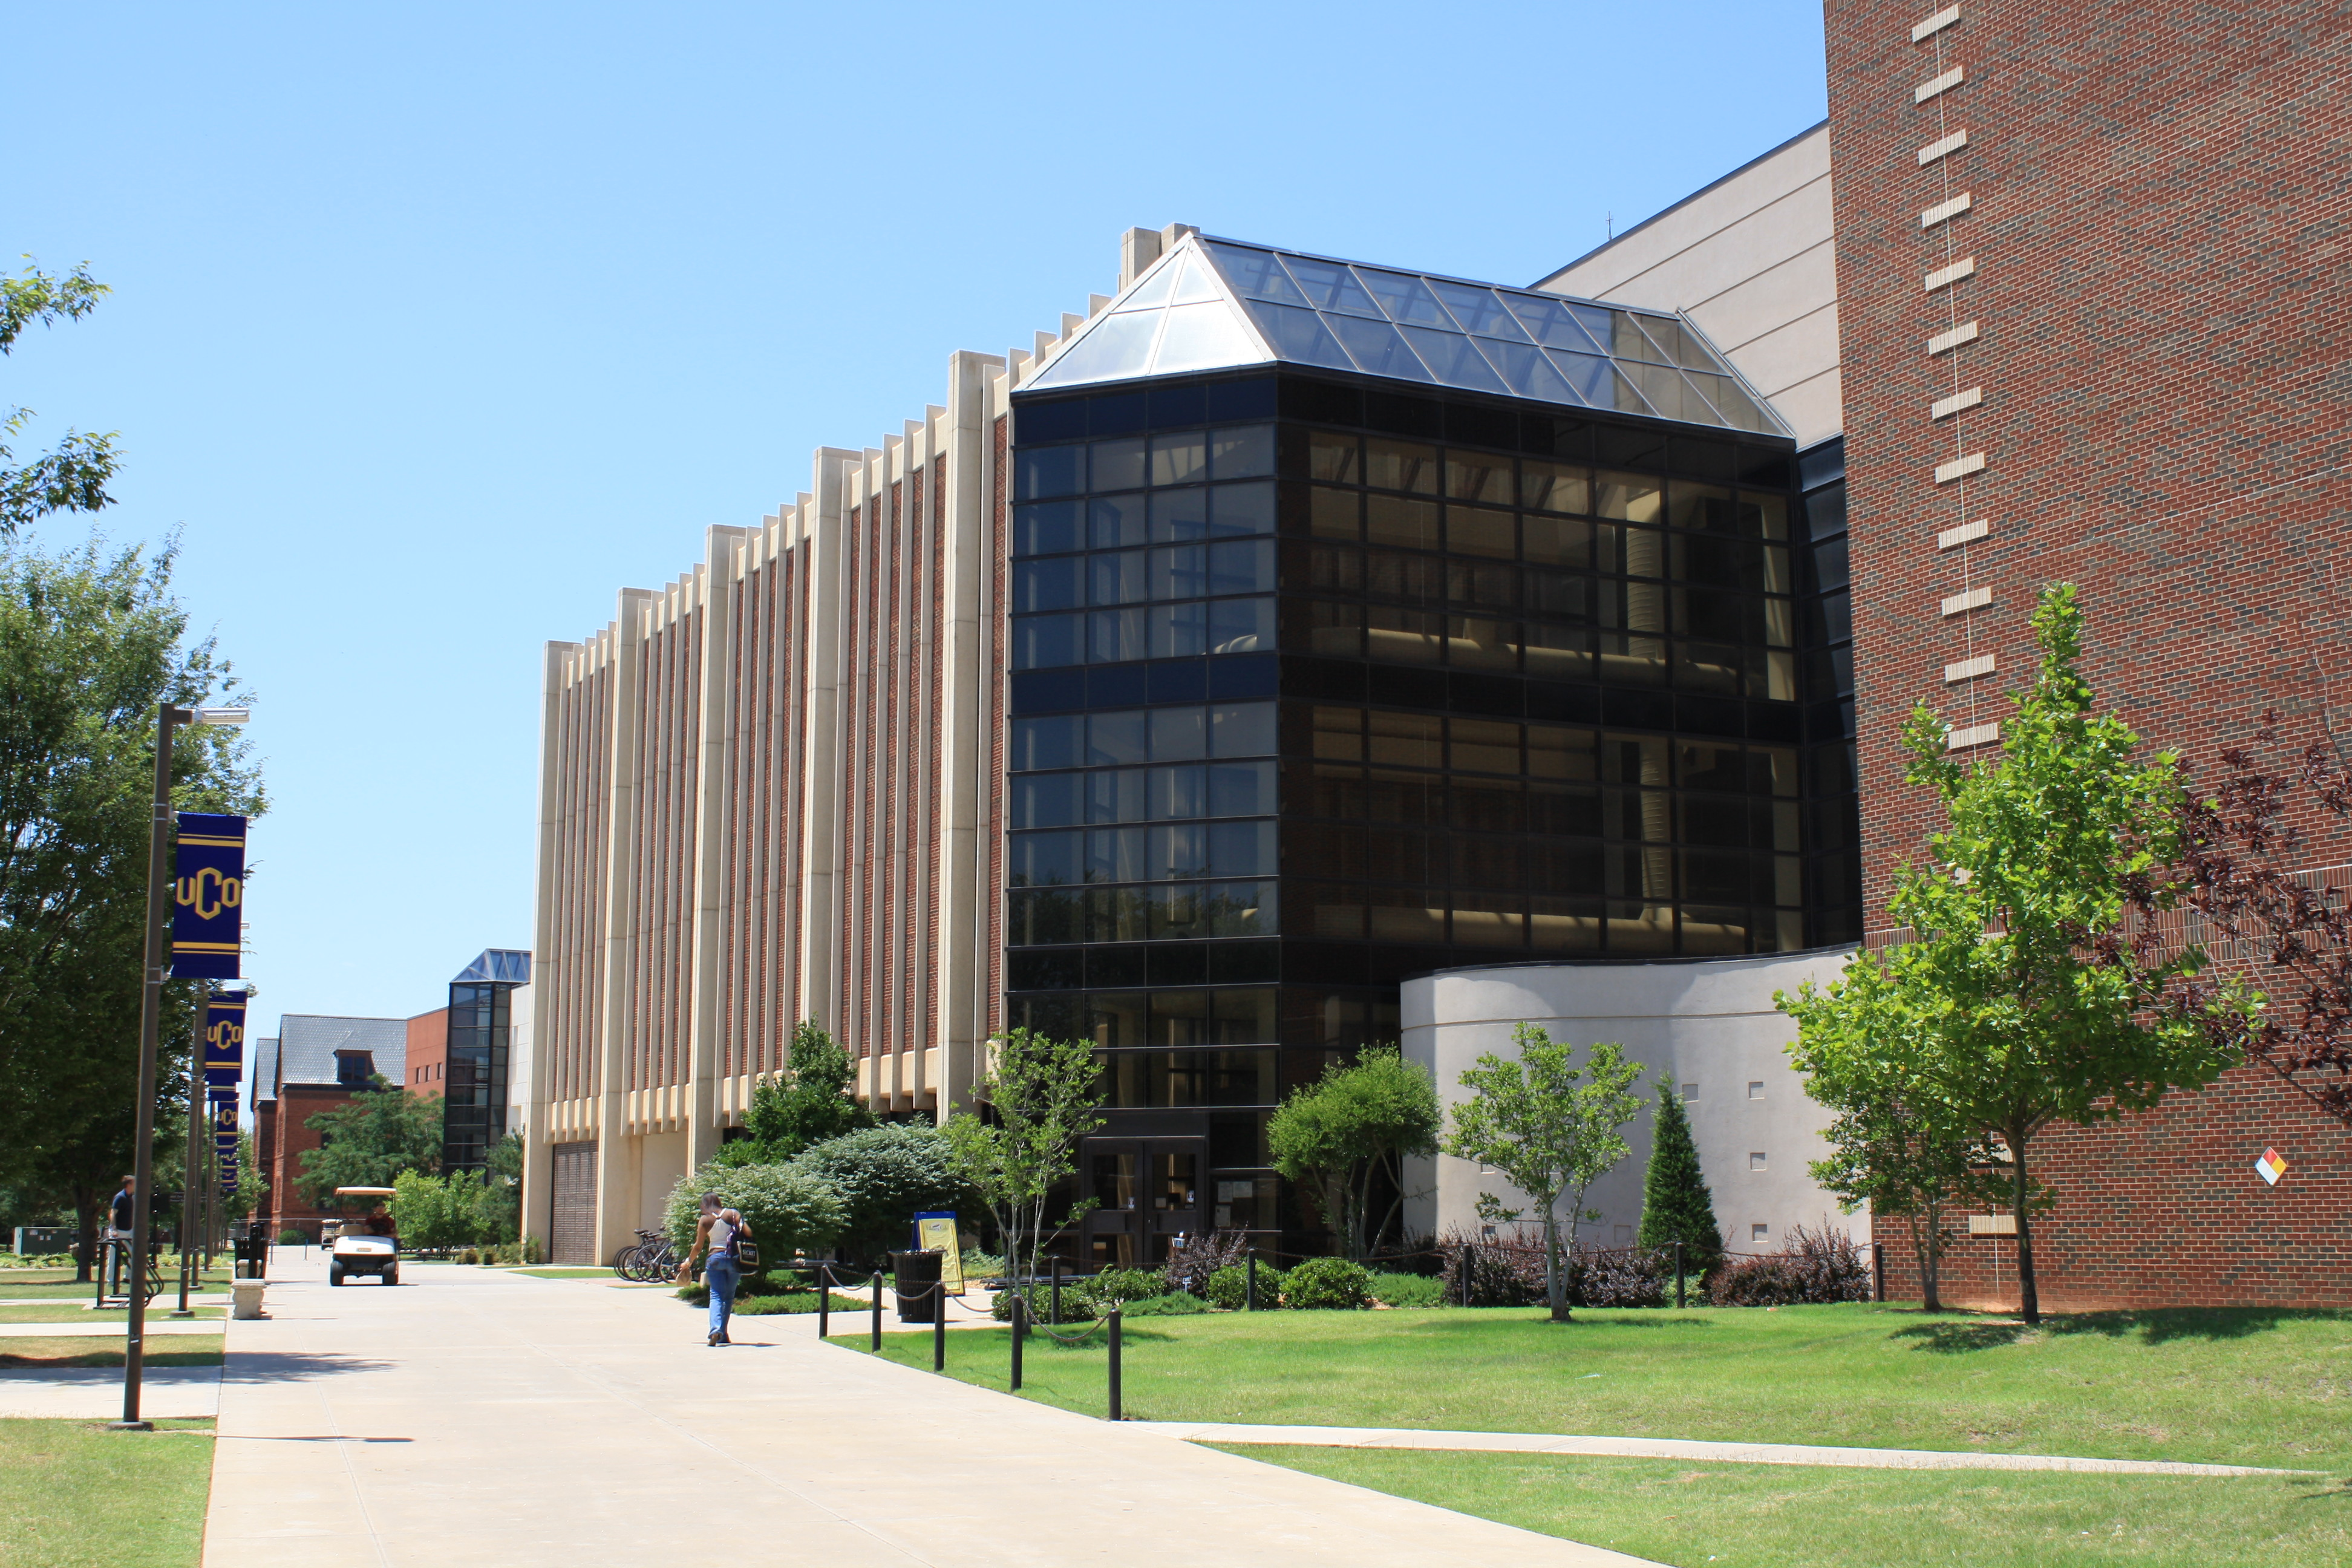 exterior of Max Chambers Library